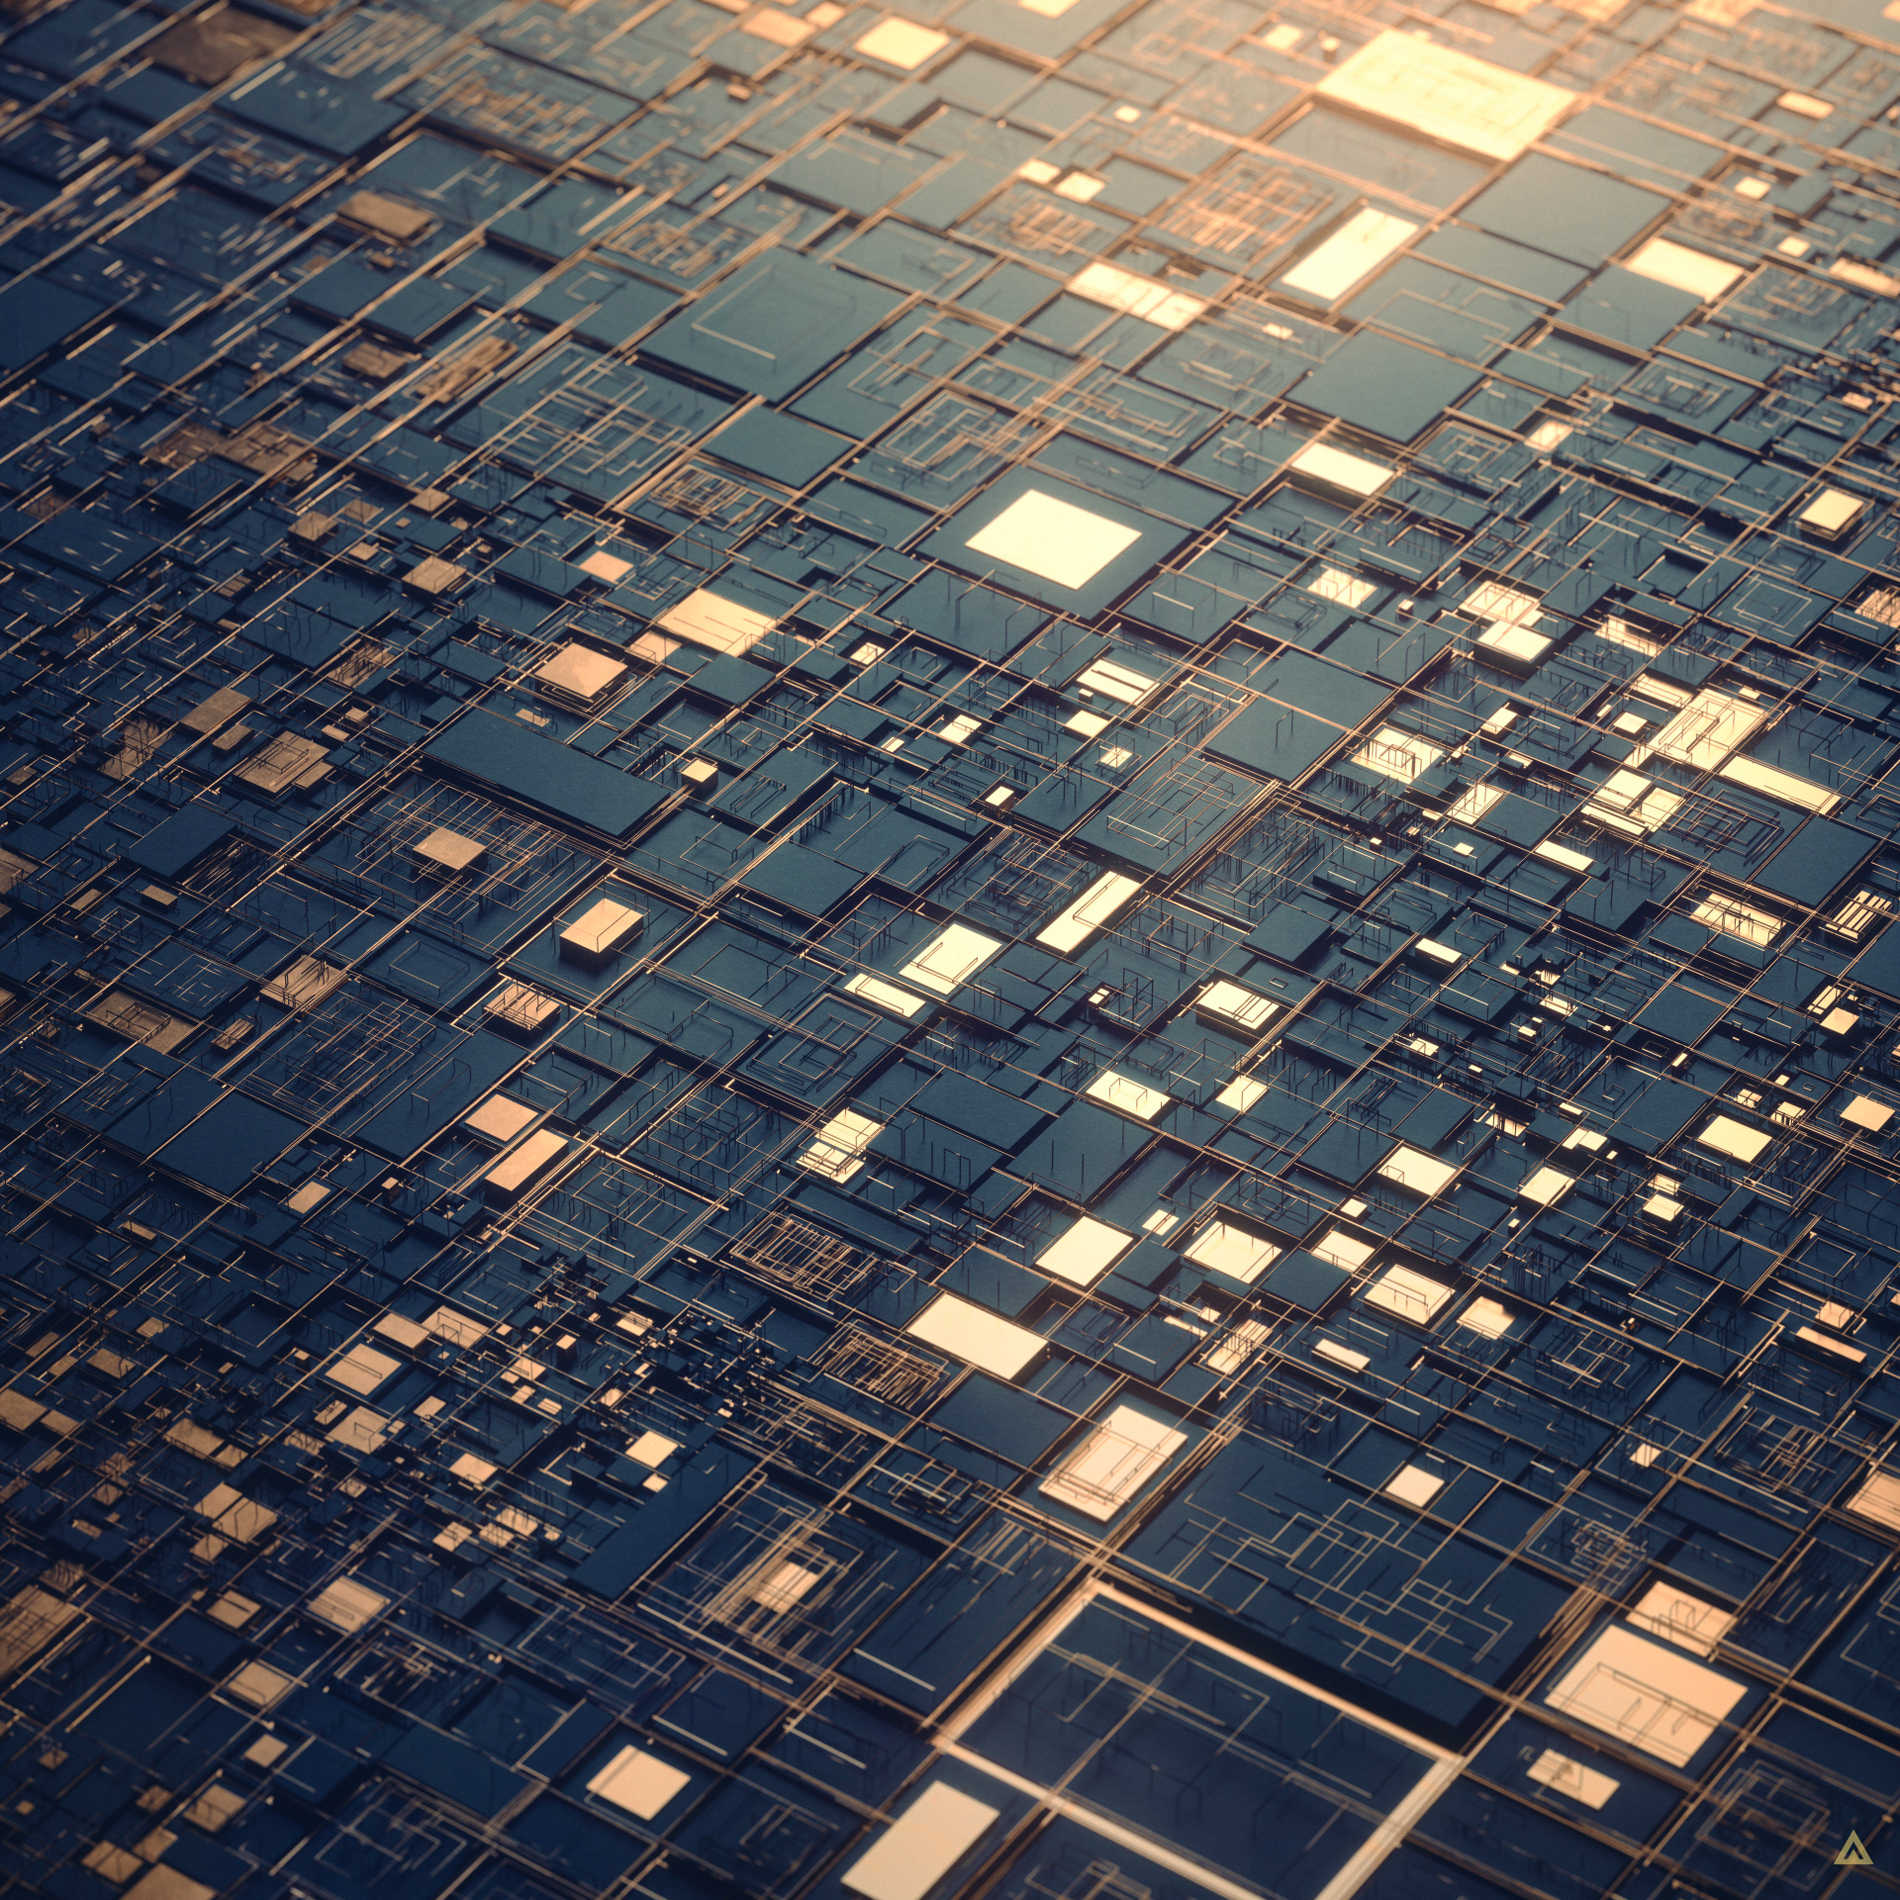 Landscapes of Glistening Digital Rectangles Formed and Subdivided by Algorithms | Colossal